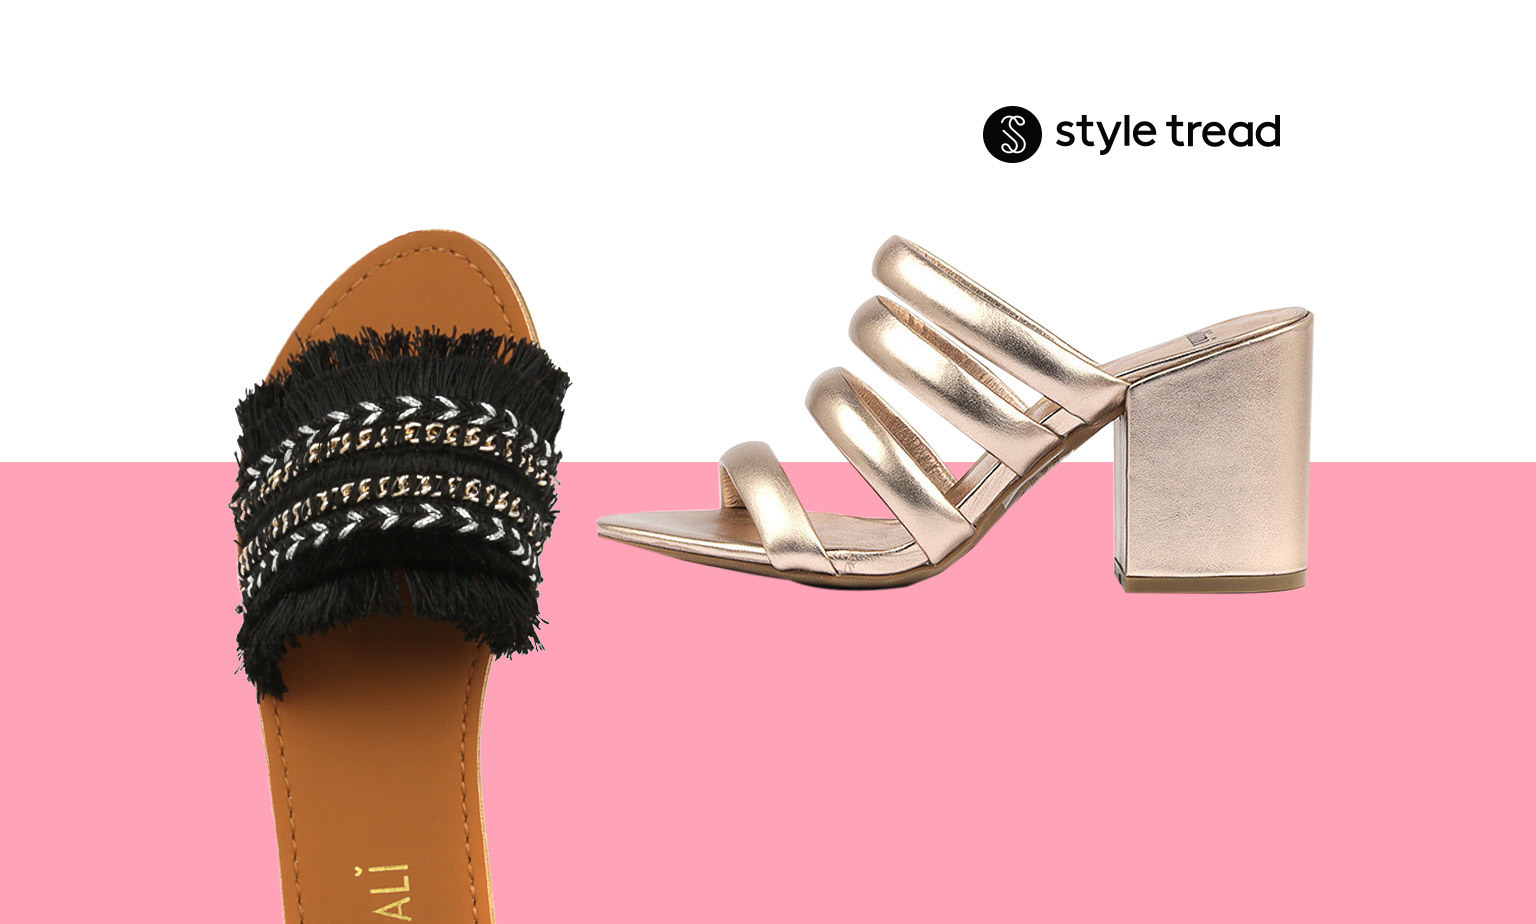 20% off at Styletread*